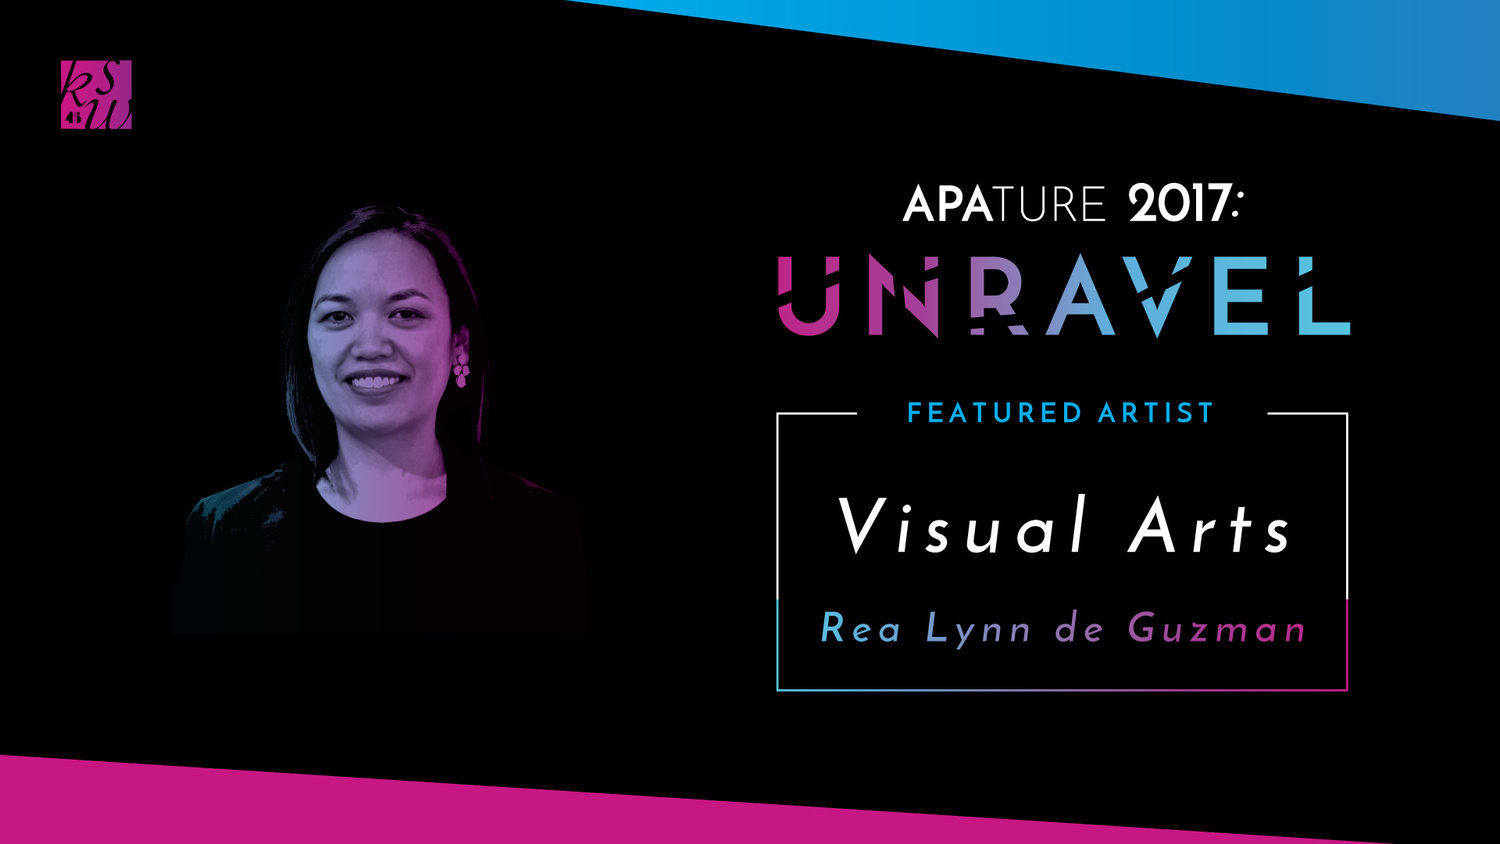 unravel_social_media_event_banner_visual_arts.jpg